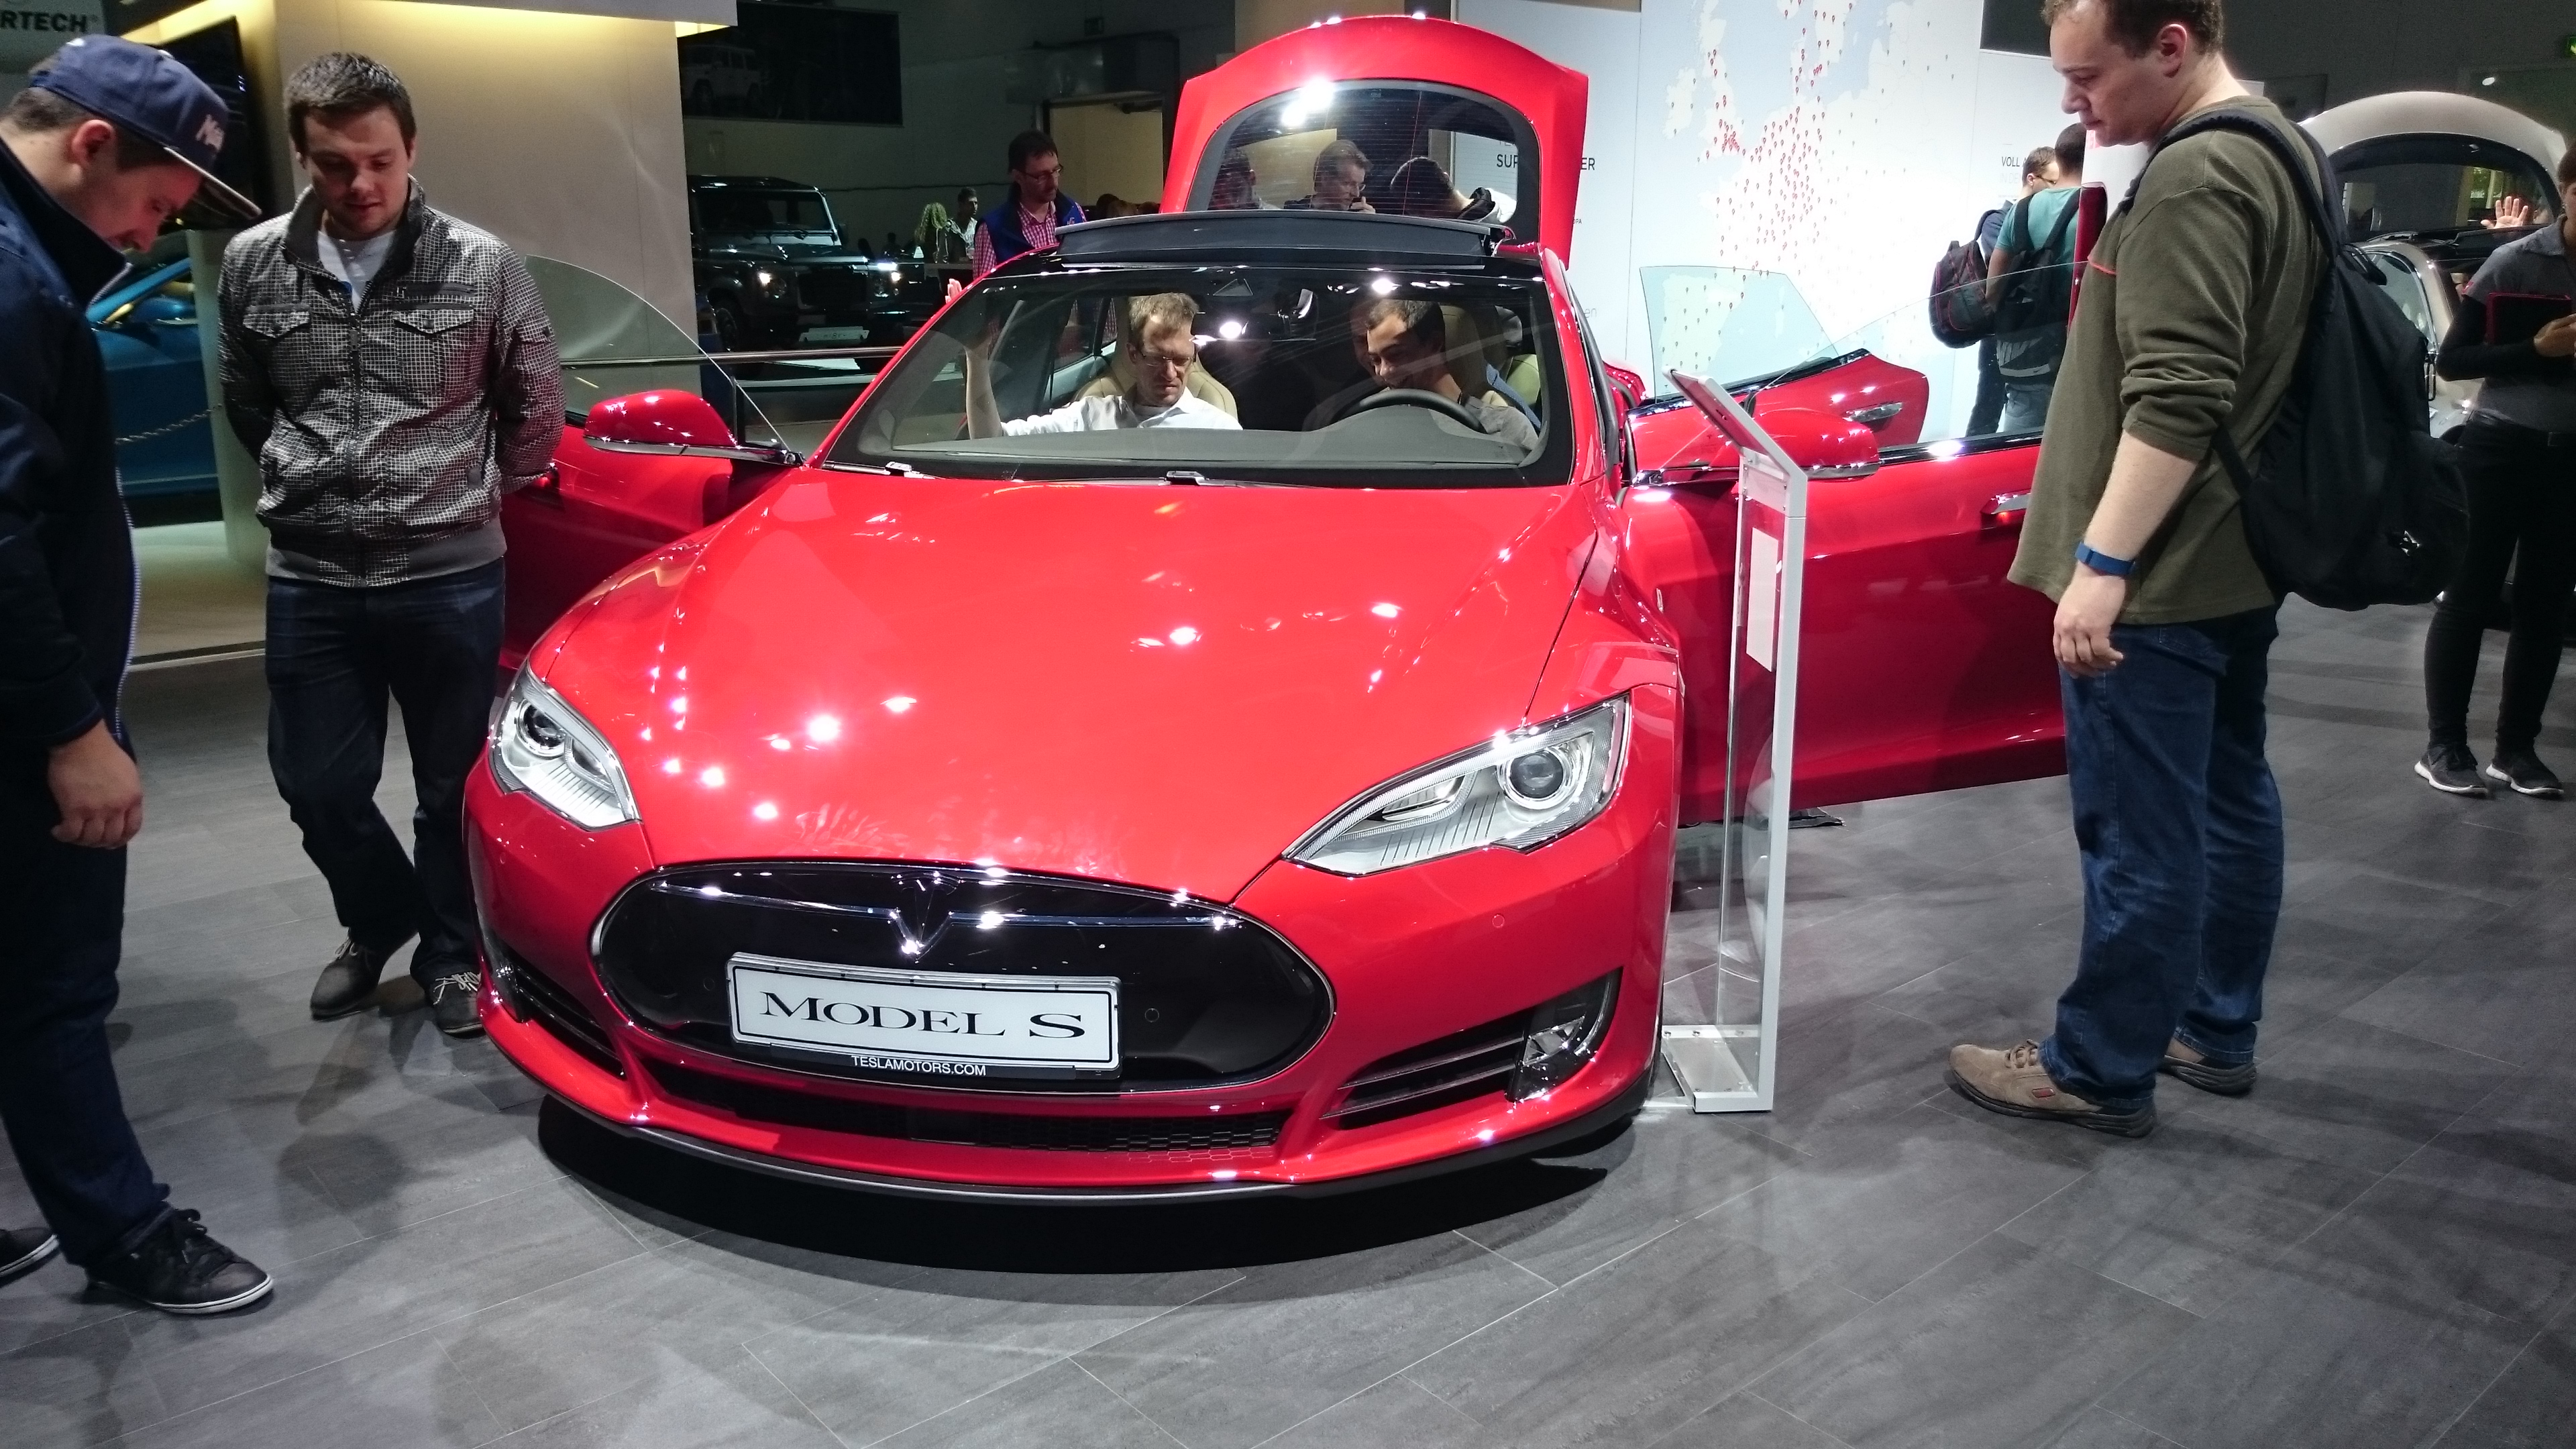 Fotos 360 del Tesla Model S en color Rojo Multicapa #VidePan en #IAA2015